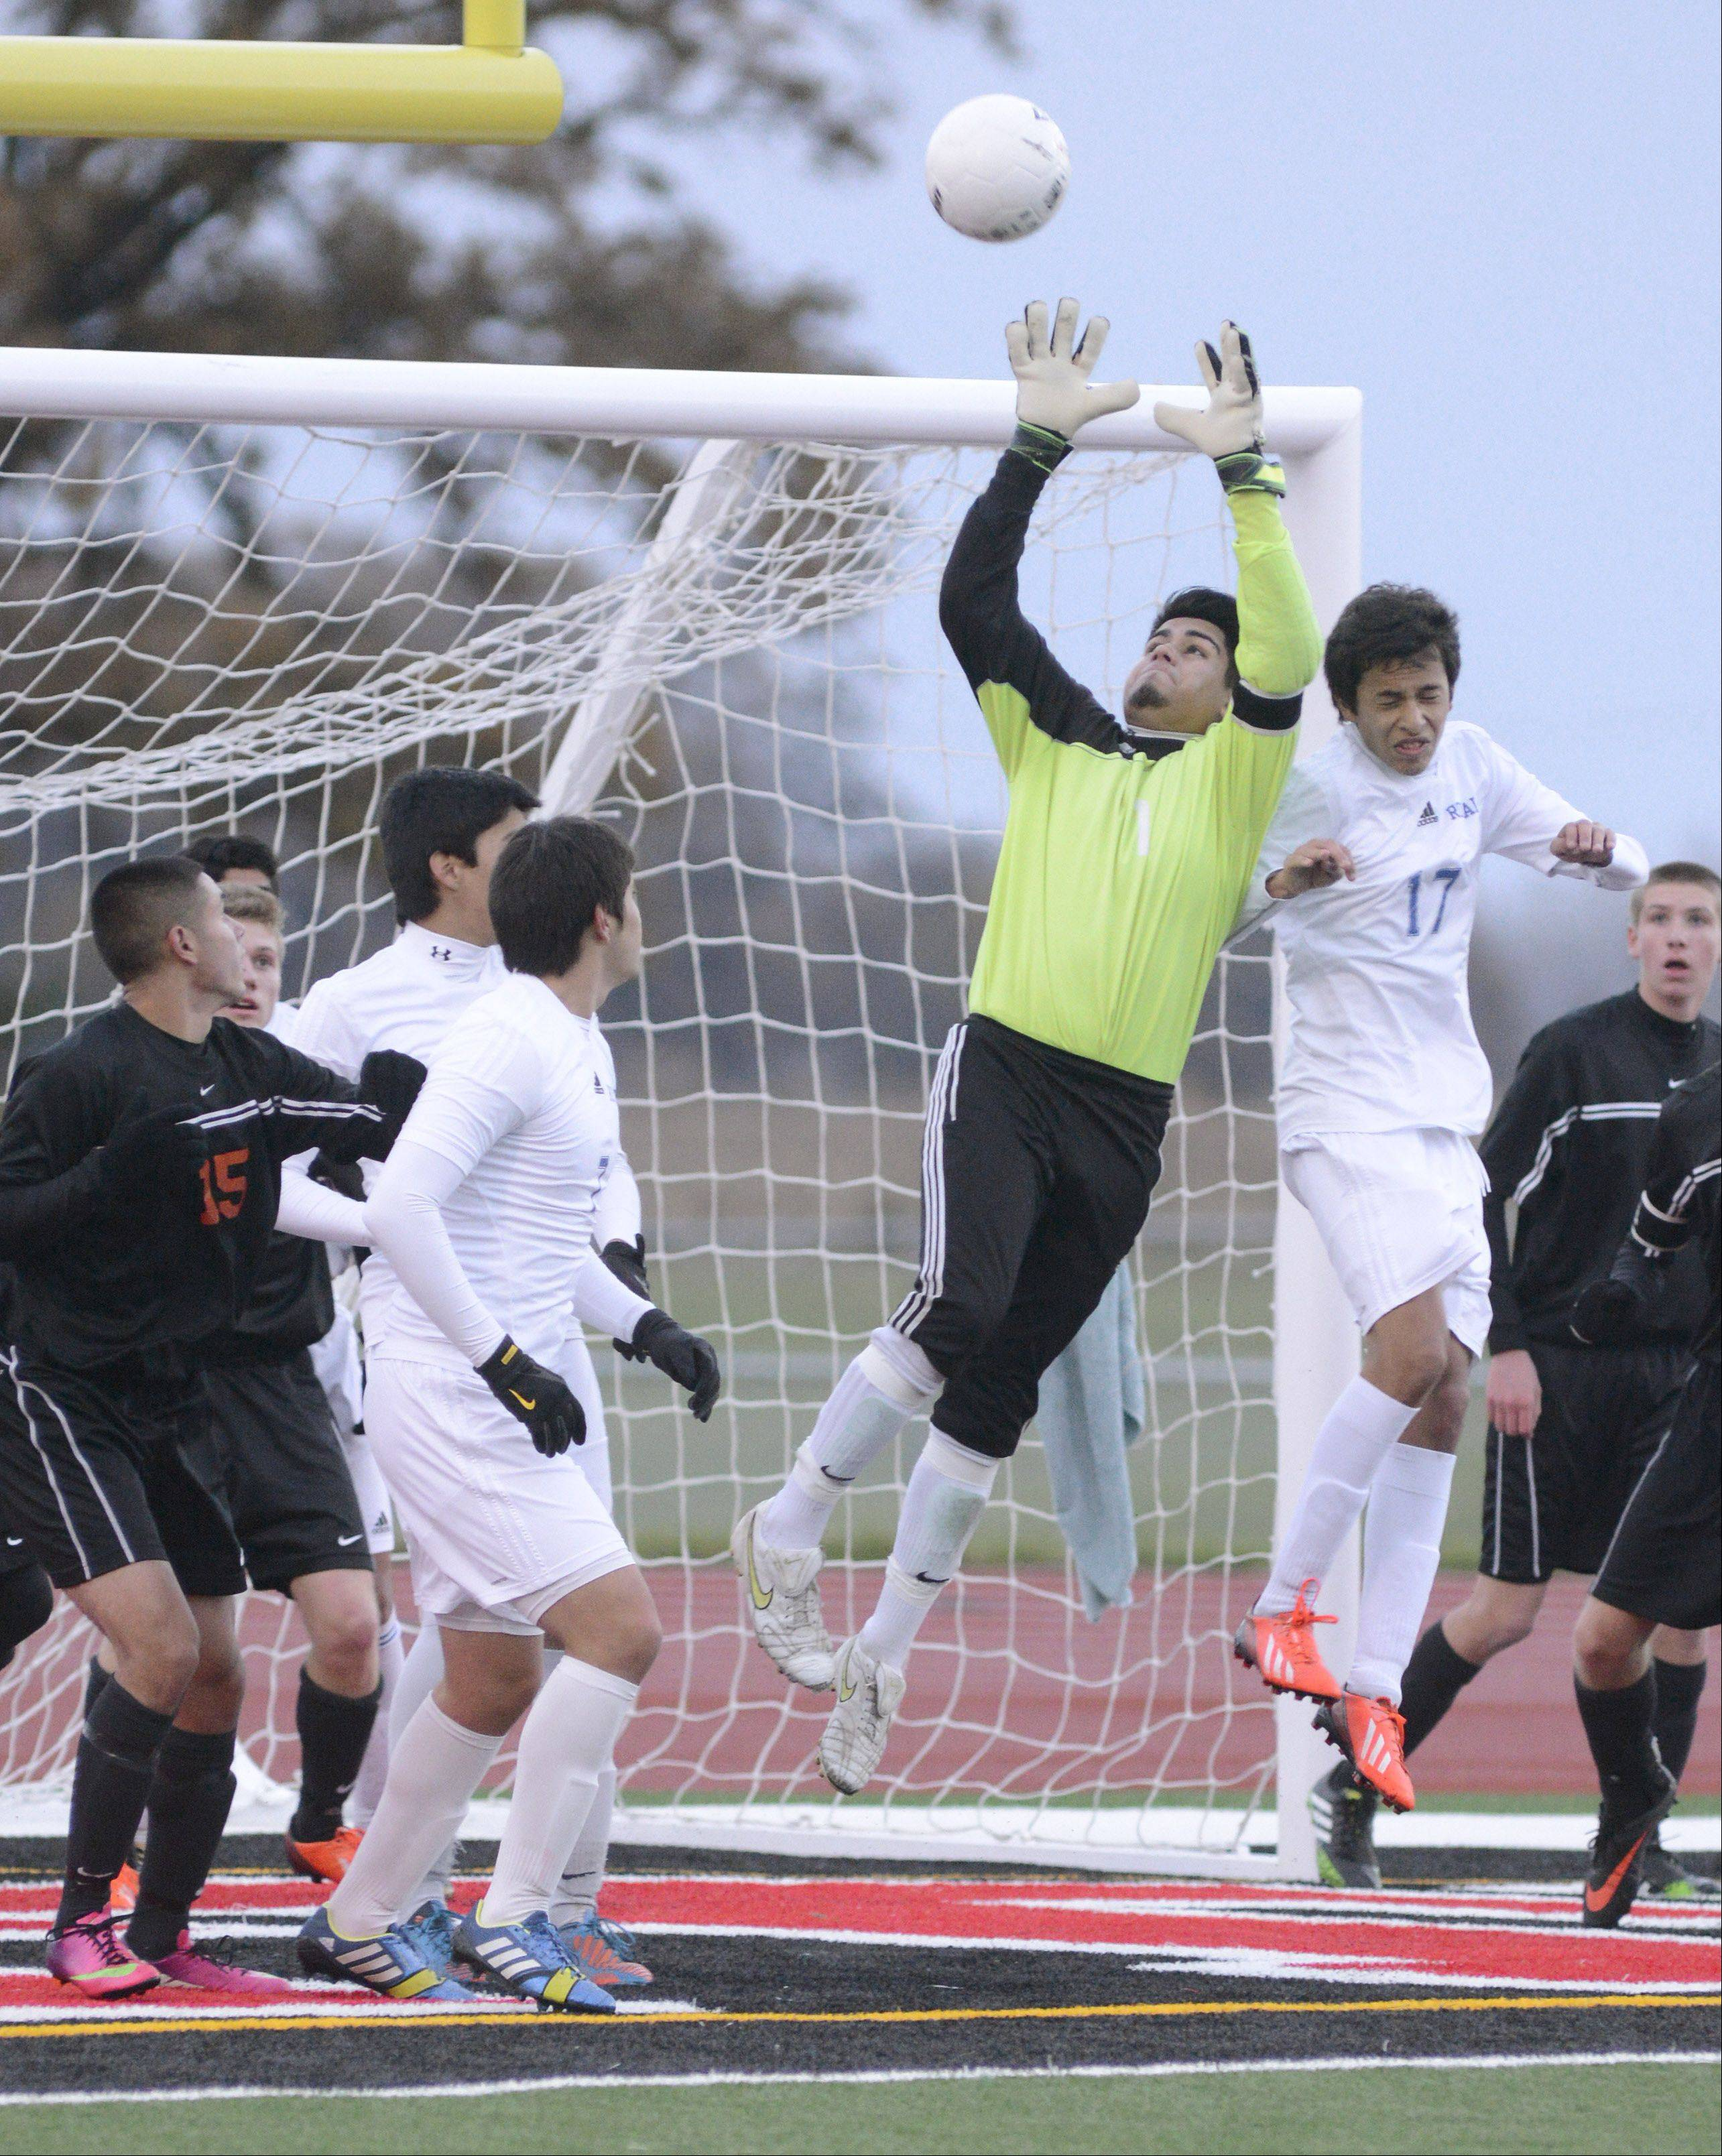 McHenry goalie Frankie Valle grabs the ball during Saturday's Class 3A sectional soccer championship in Huntley.